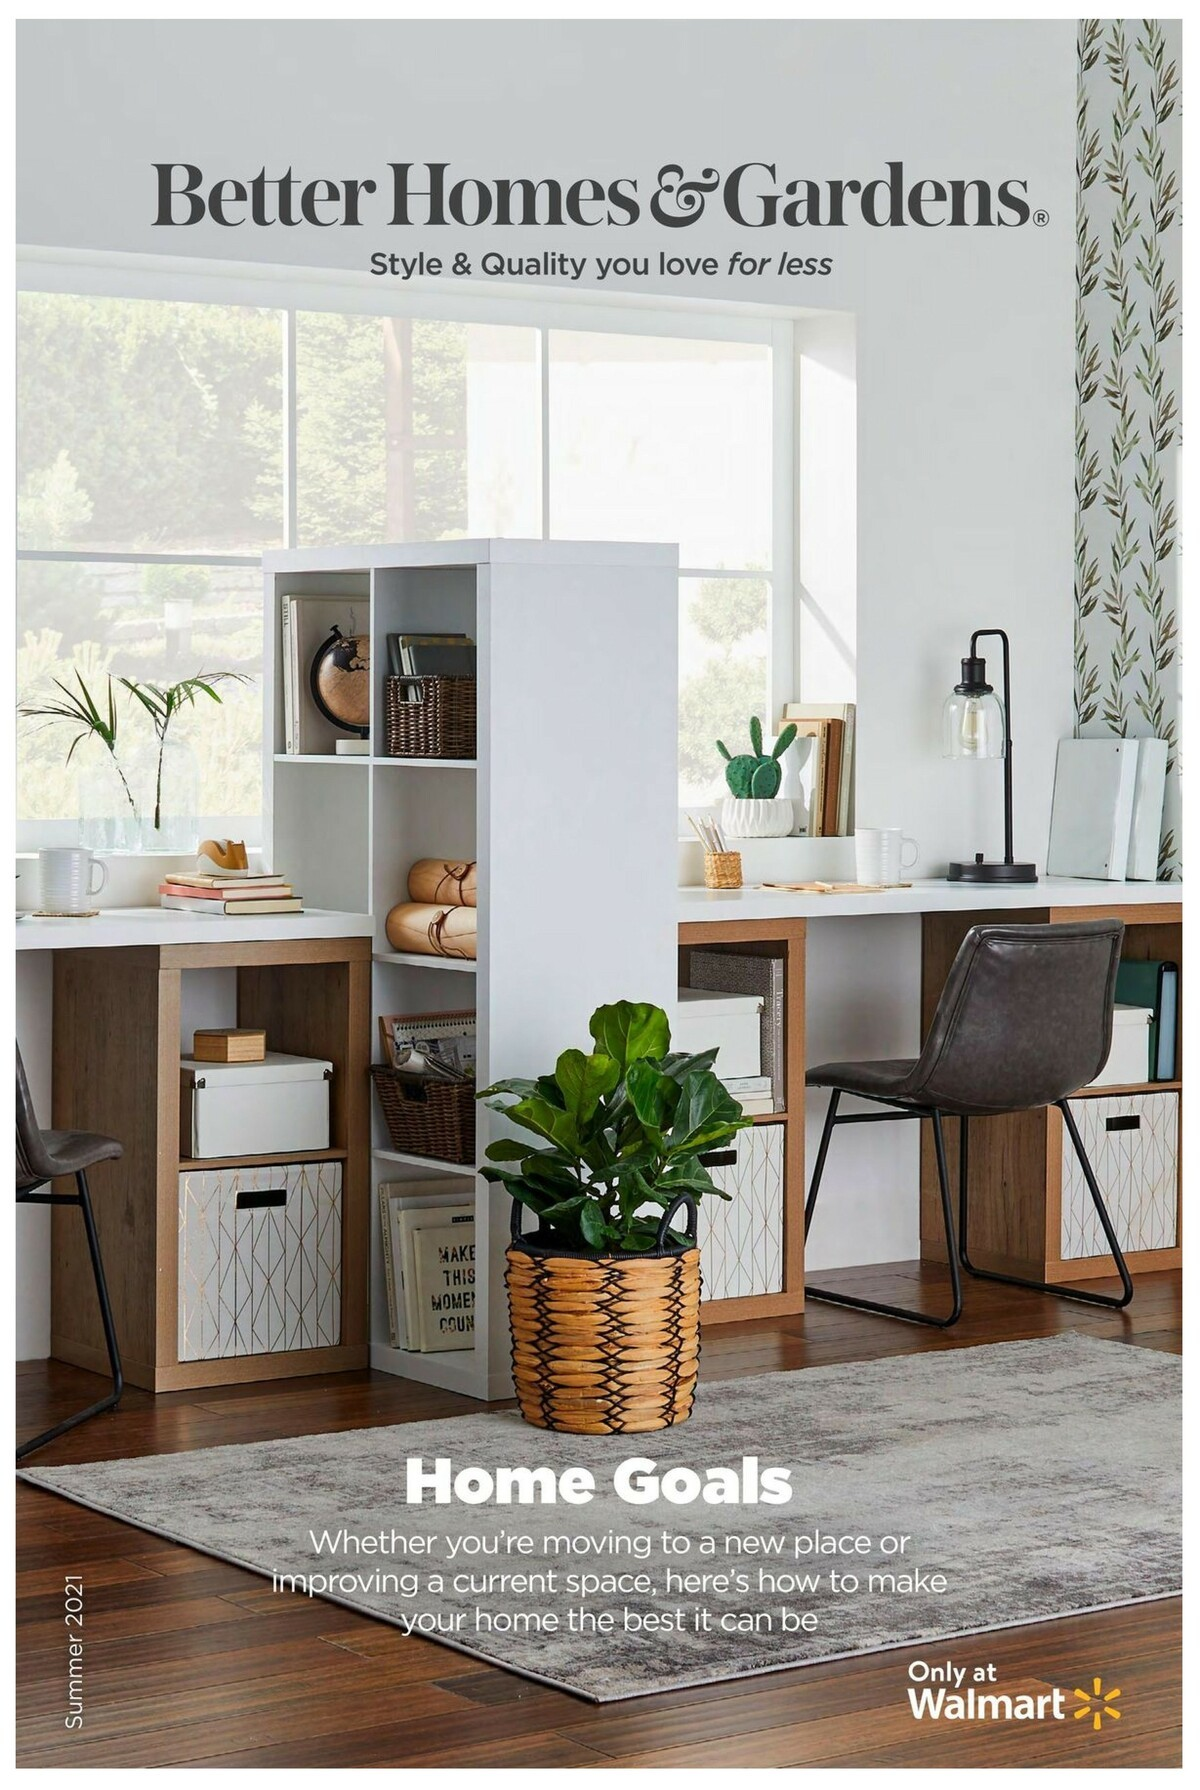 Walmart Better Homes & Gardens Weekly Ad from July 12